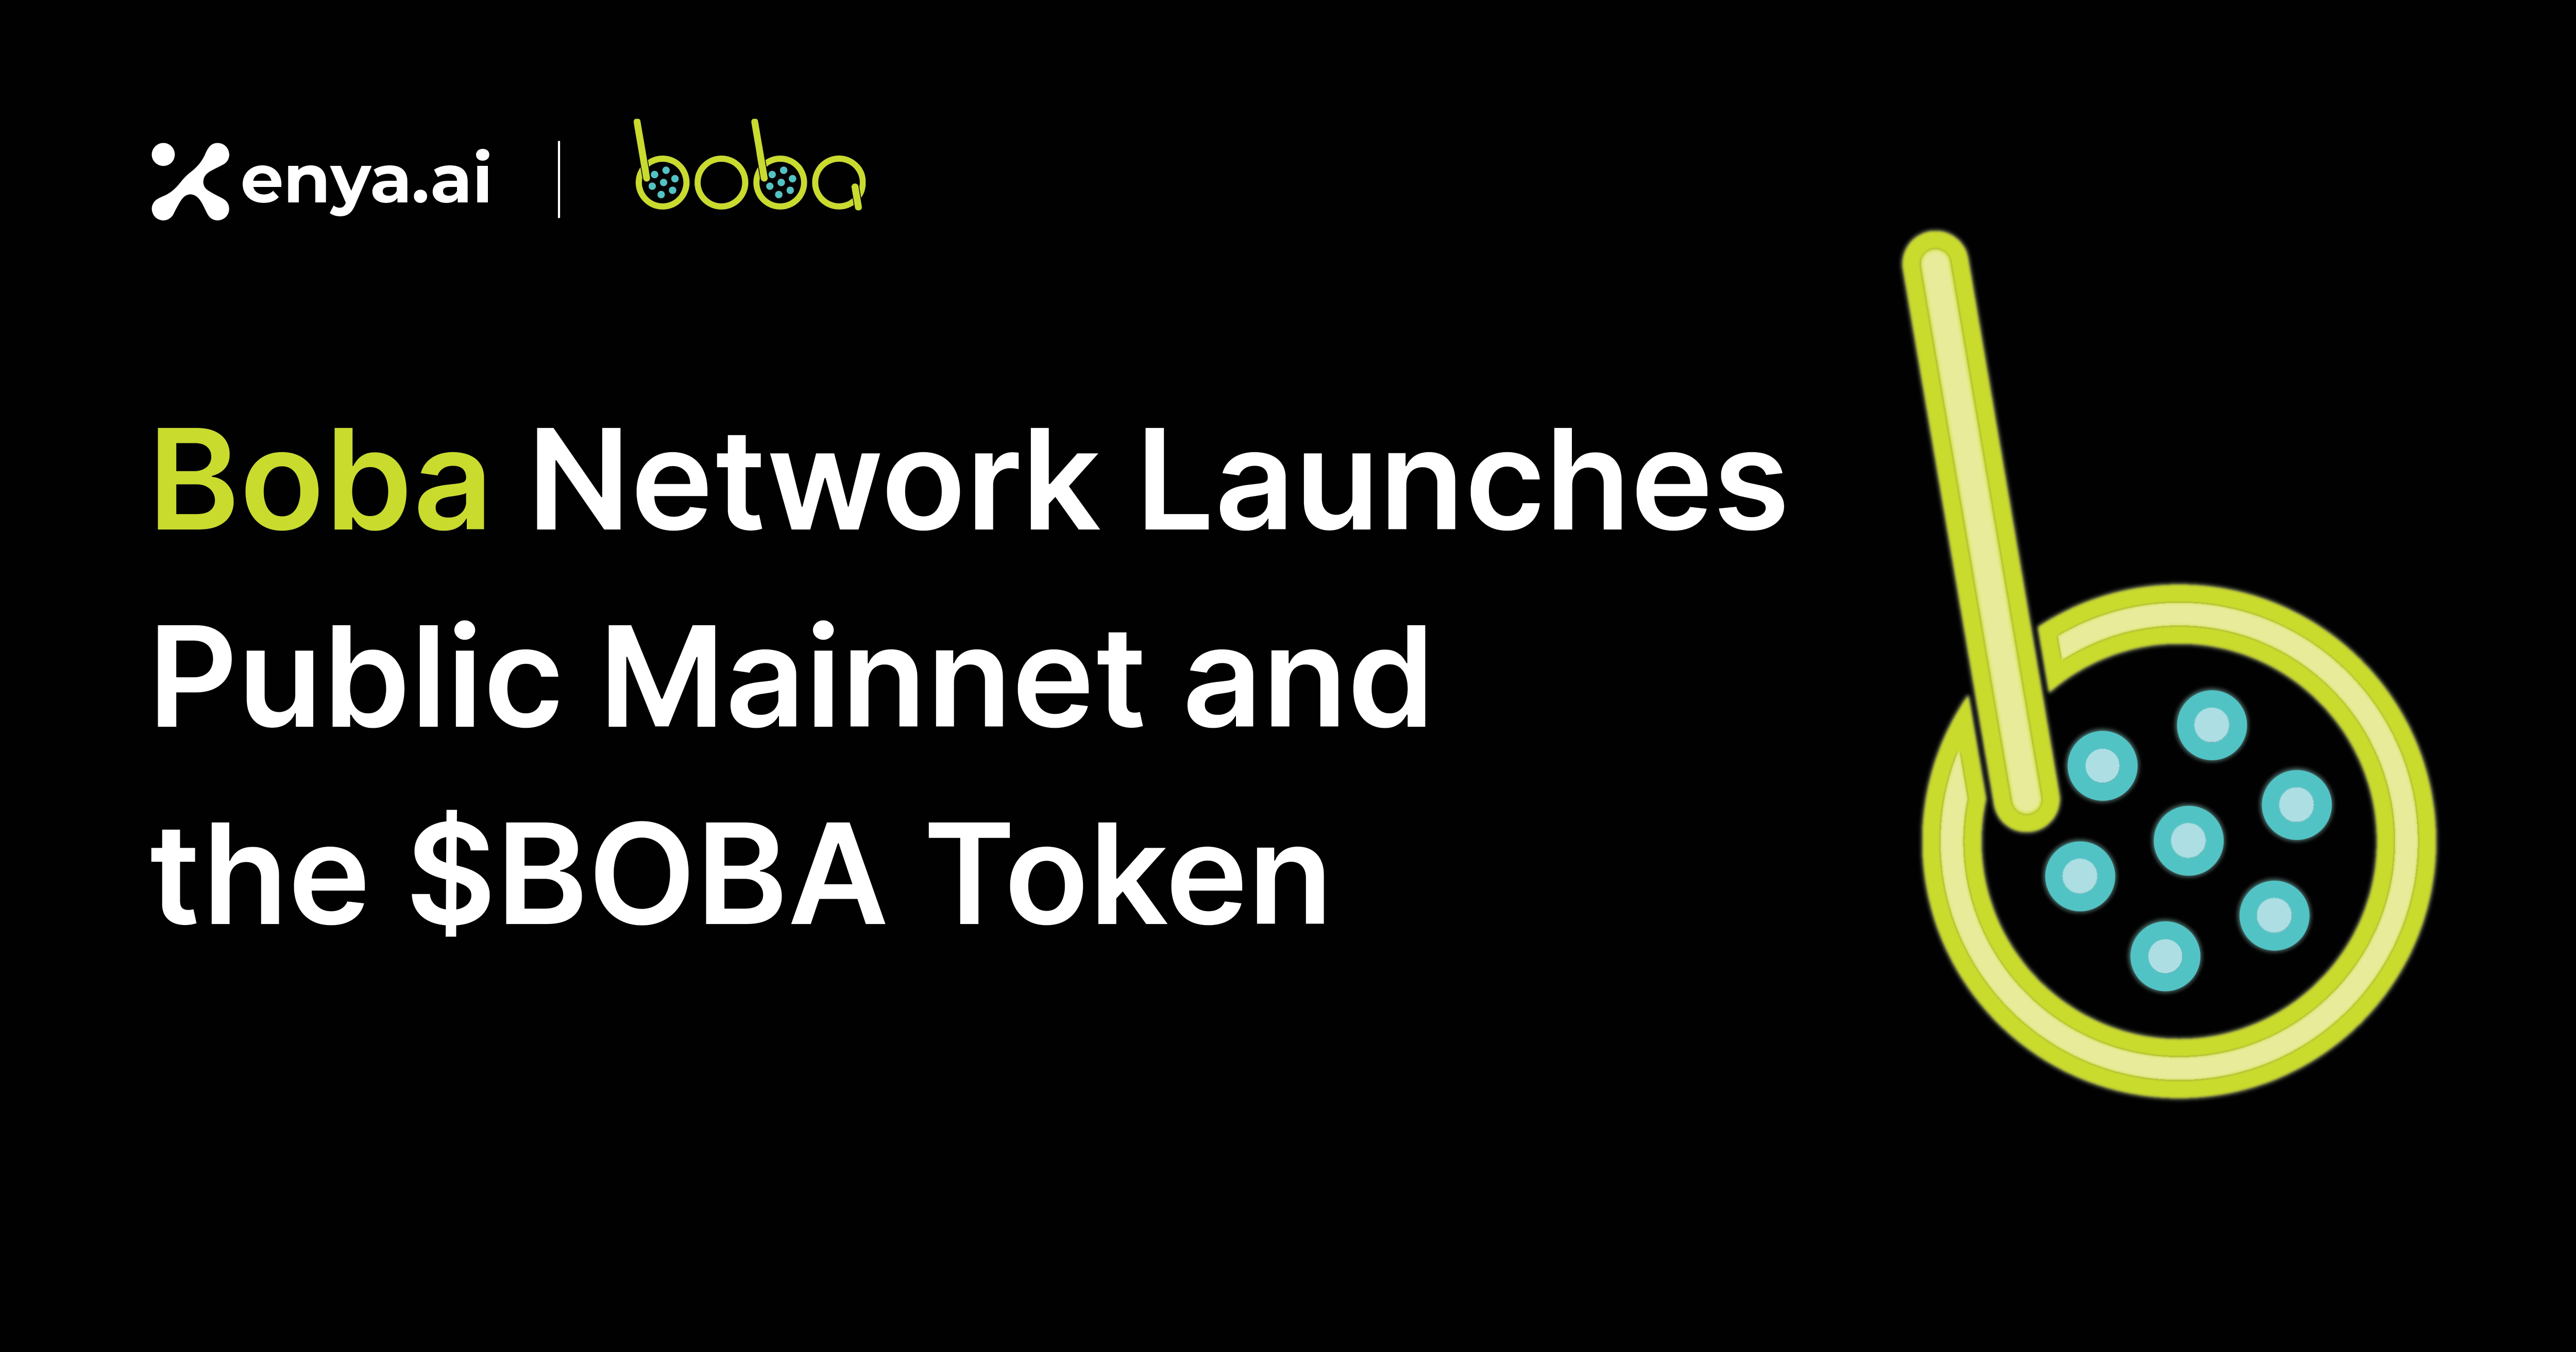 Boba Network Launches Public Mainnet and $BOBA Token